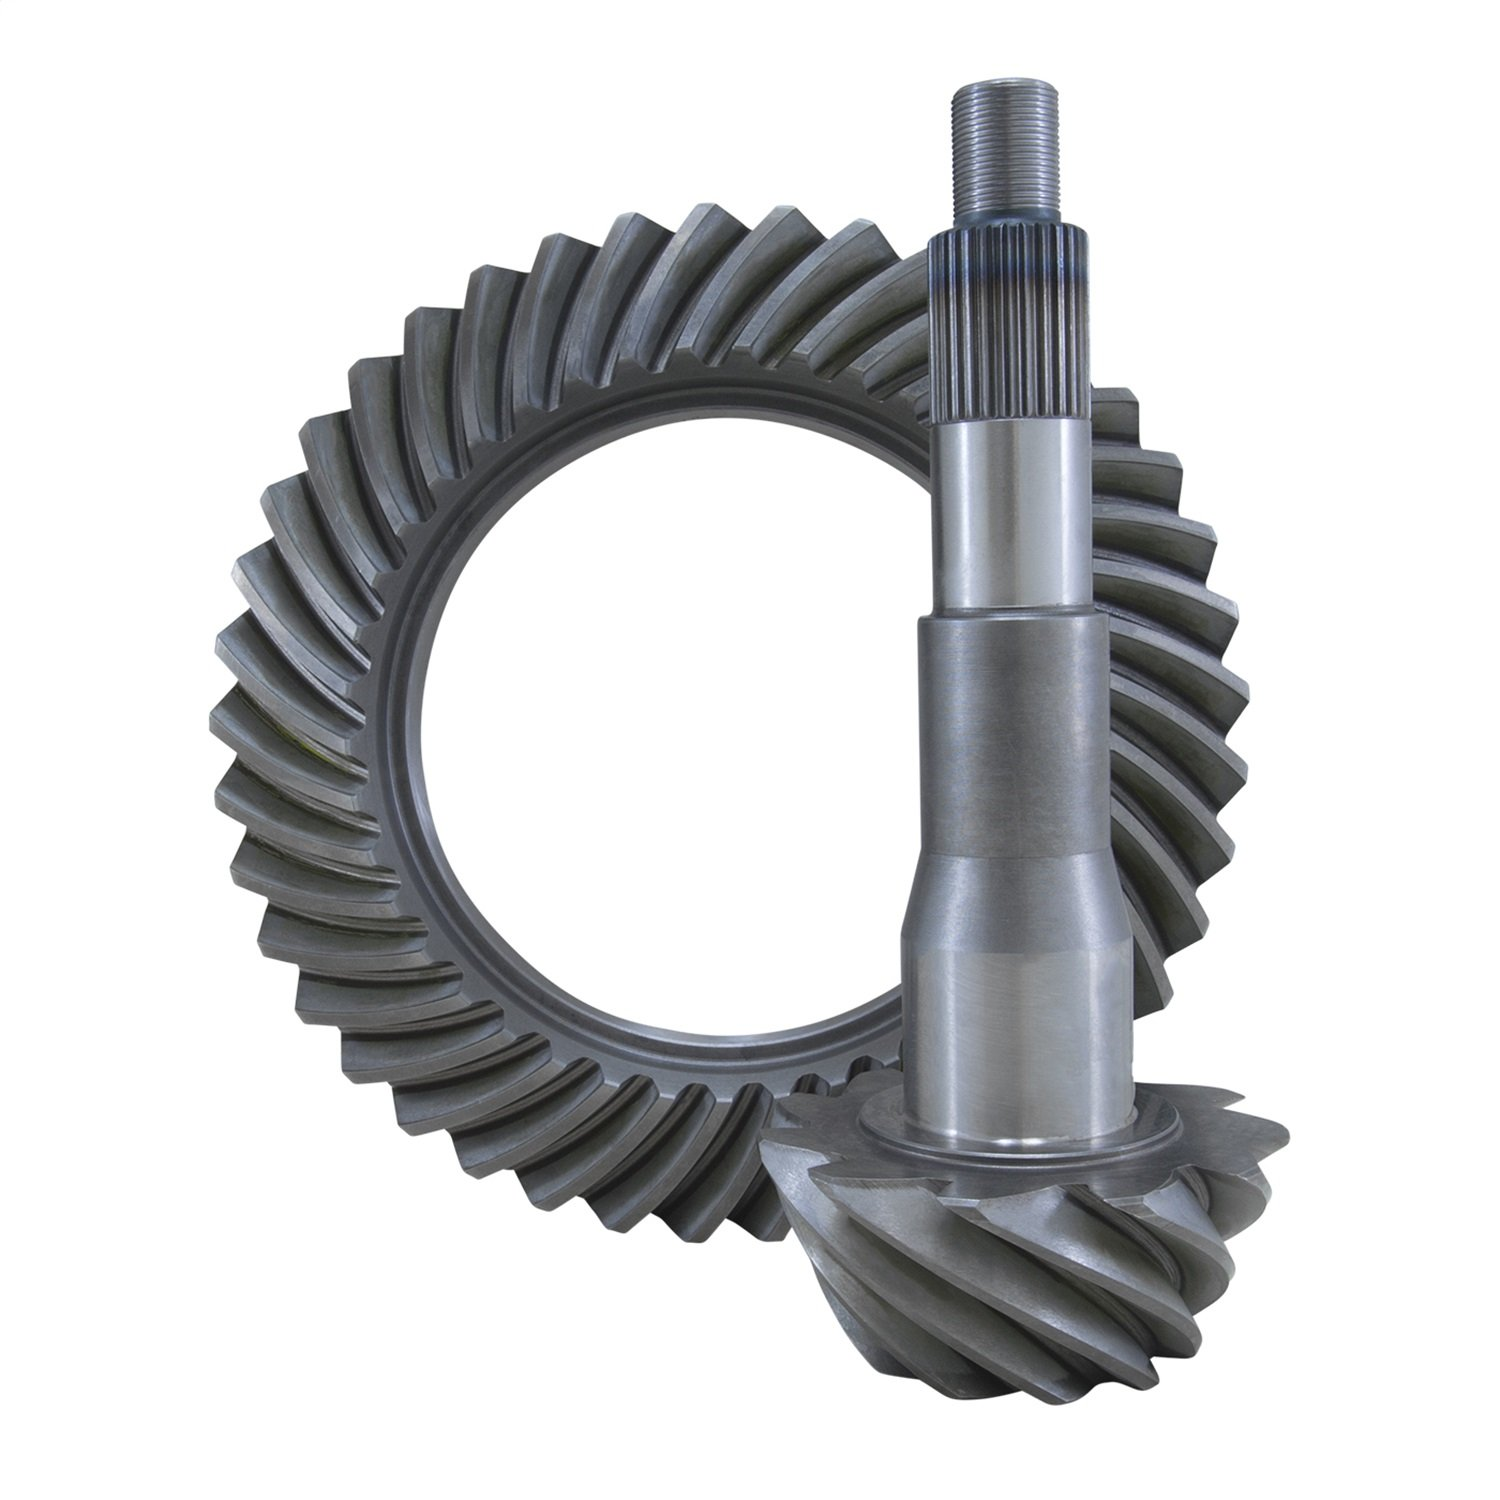 USA Standard Gear (ZG F10.25-355L) Ring & Pinion Gear Set for Ford 10.25 Differential